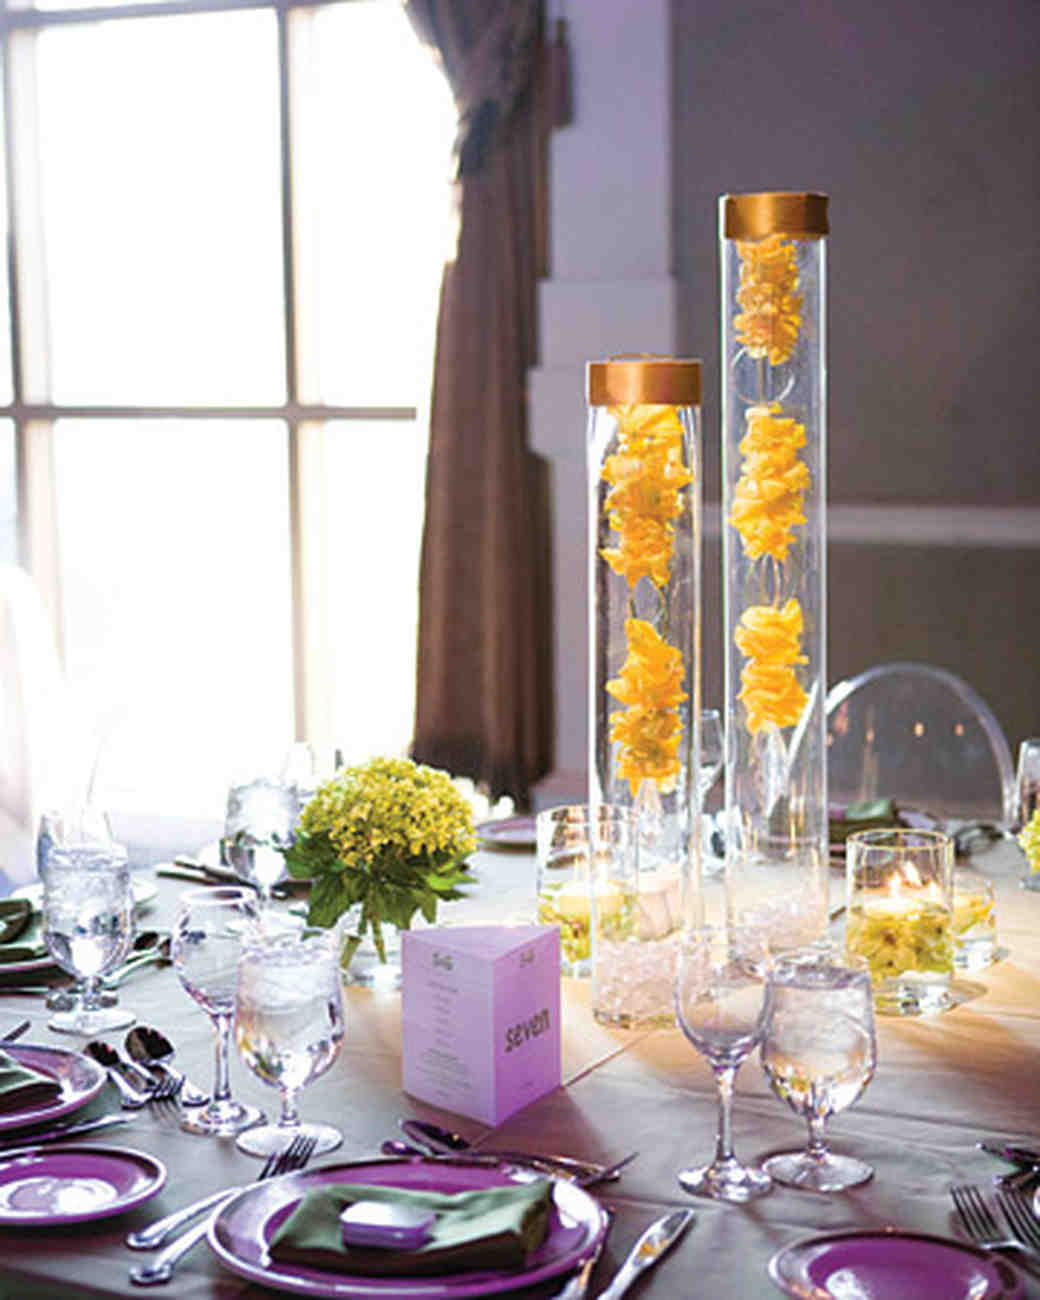 Wedding Centerpieces: Modern Wedding Centerpieces